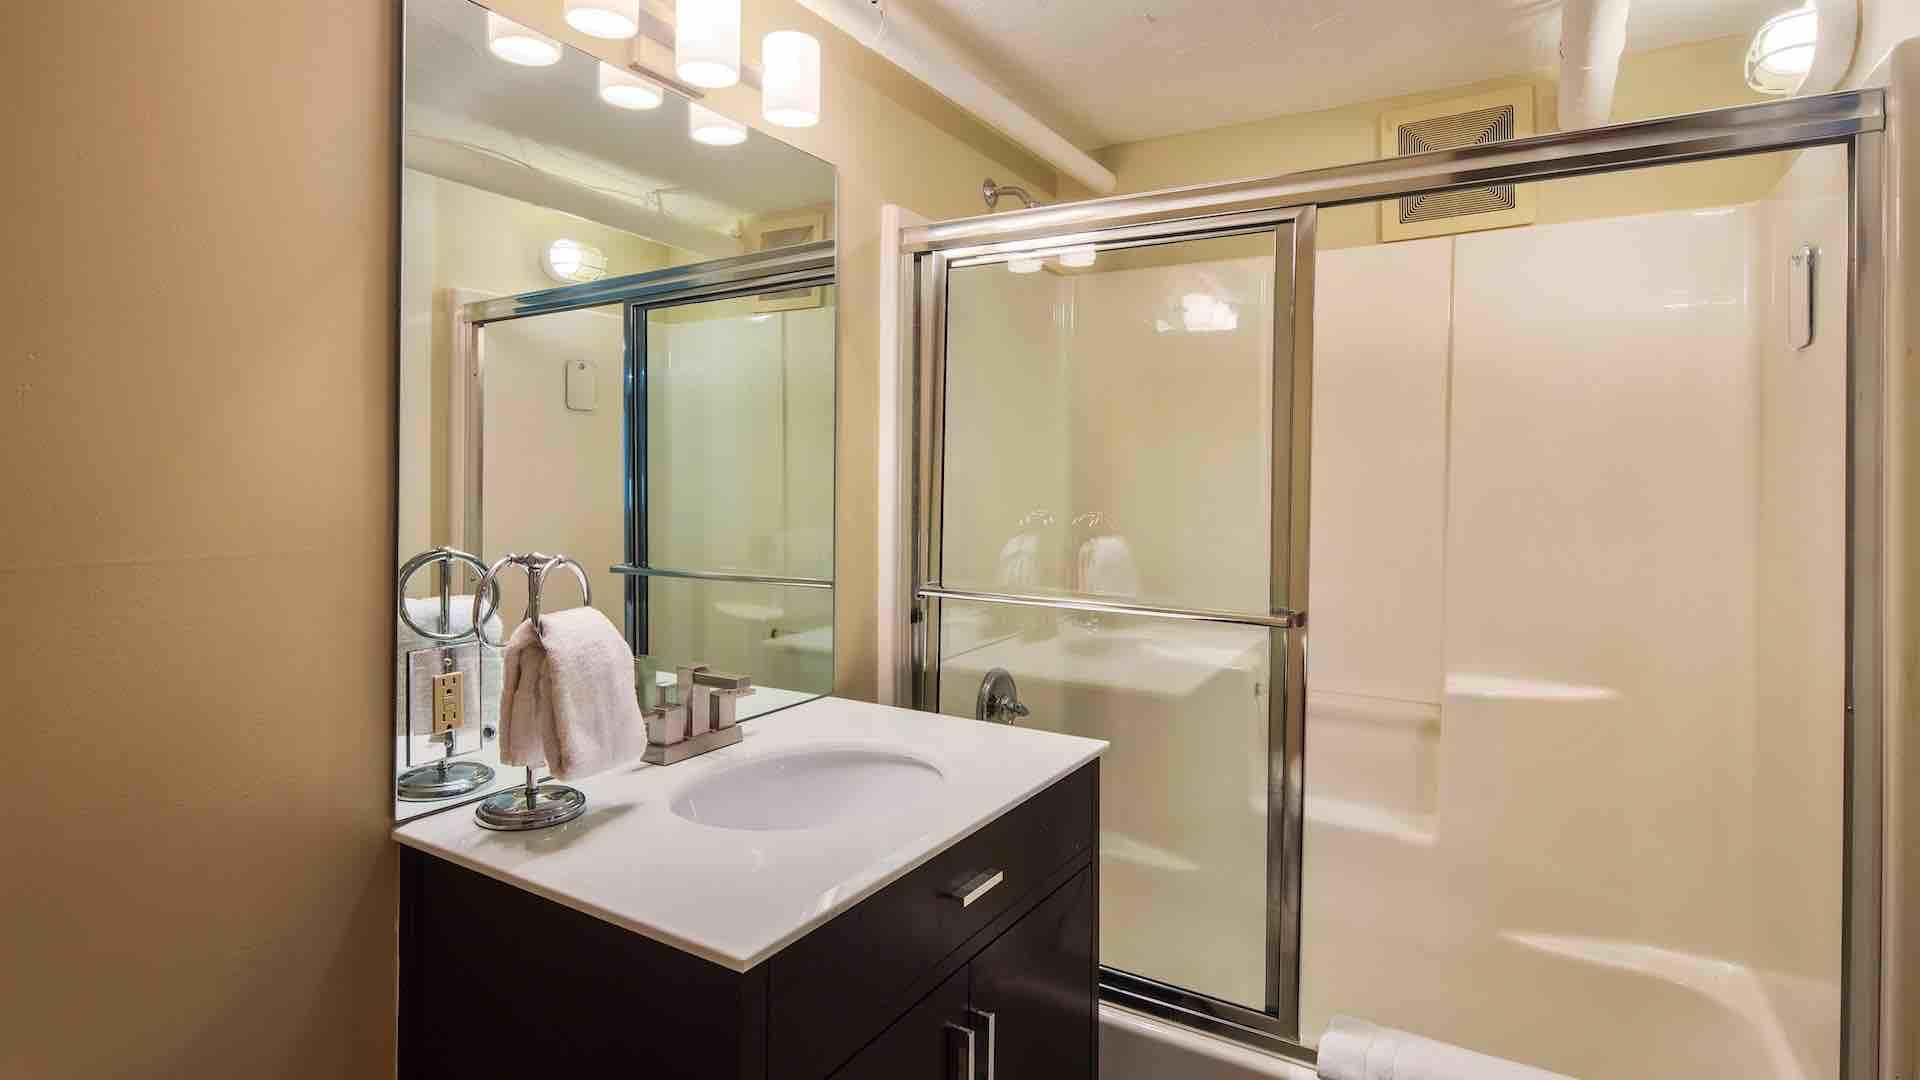 The fourth bedroom's bathroom is also en suite, with pedestal sink and a shower…